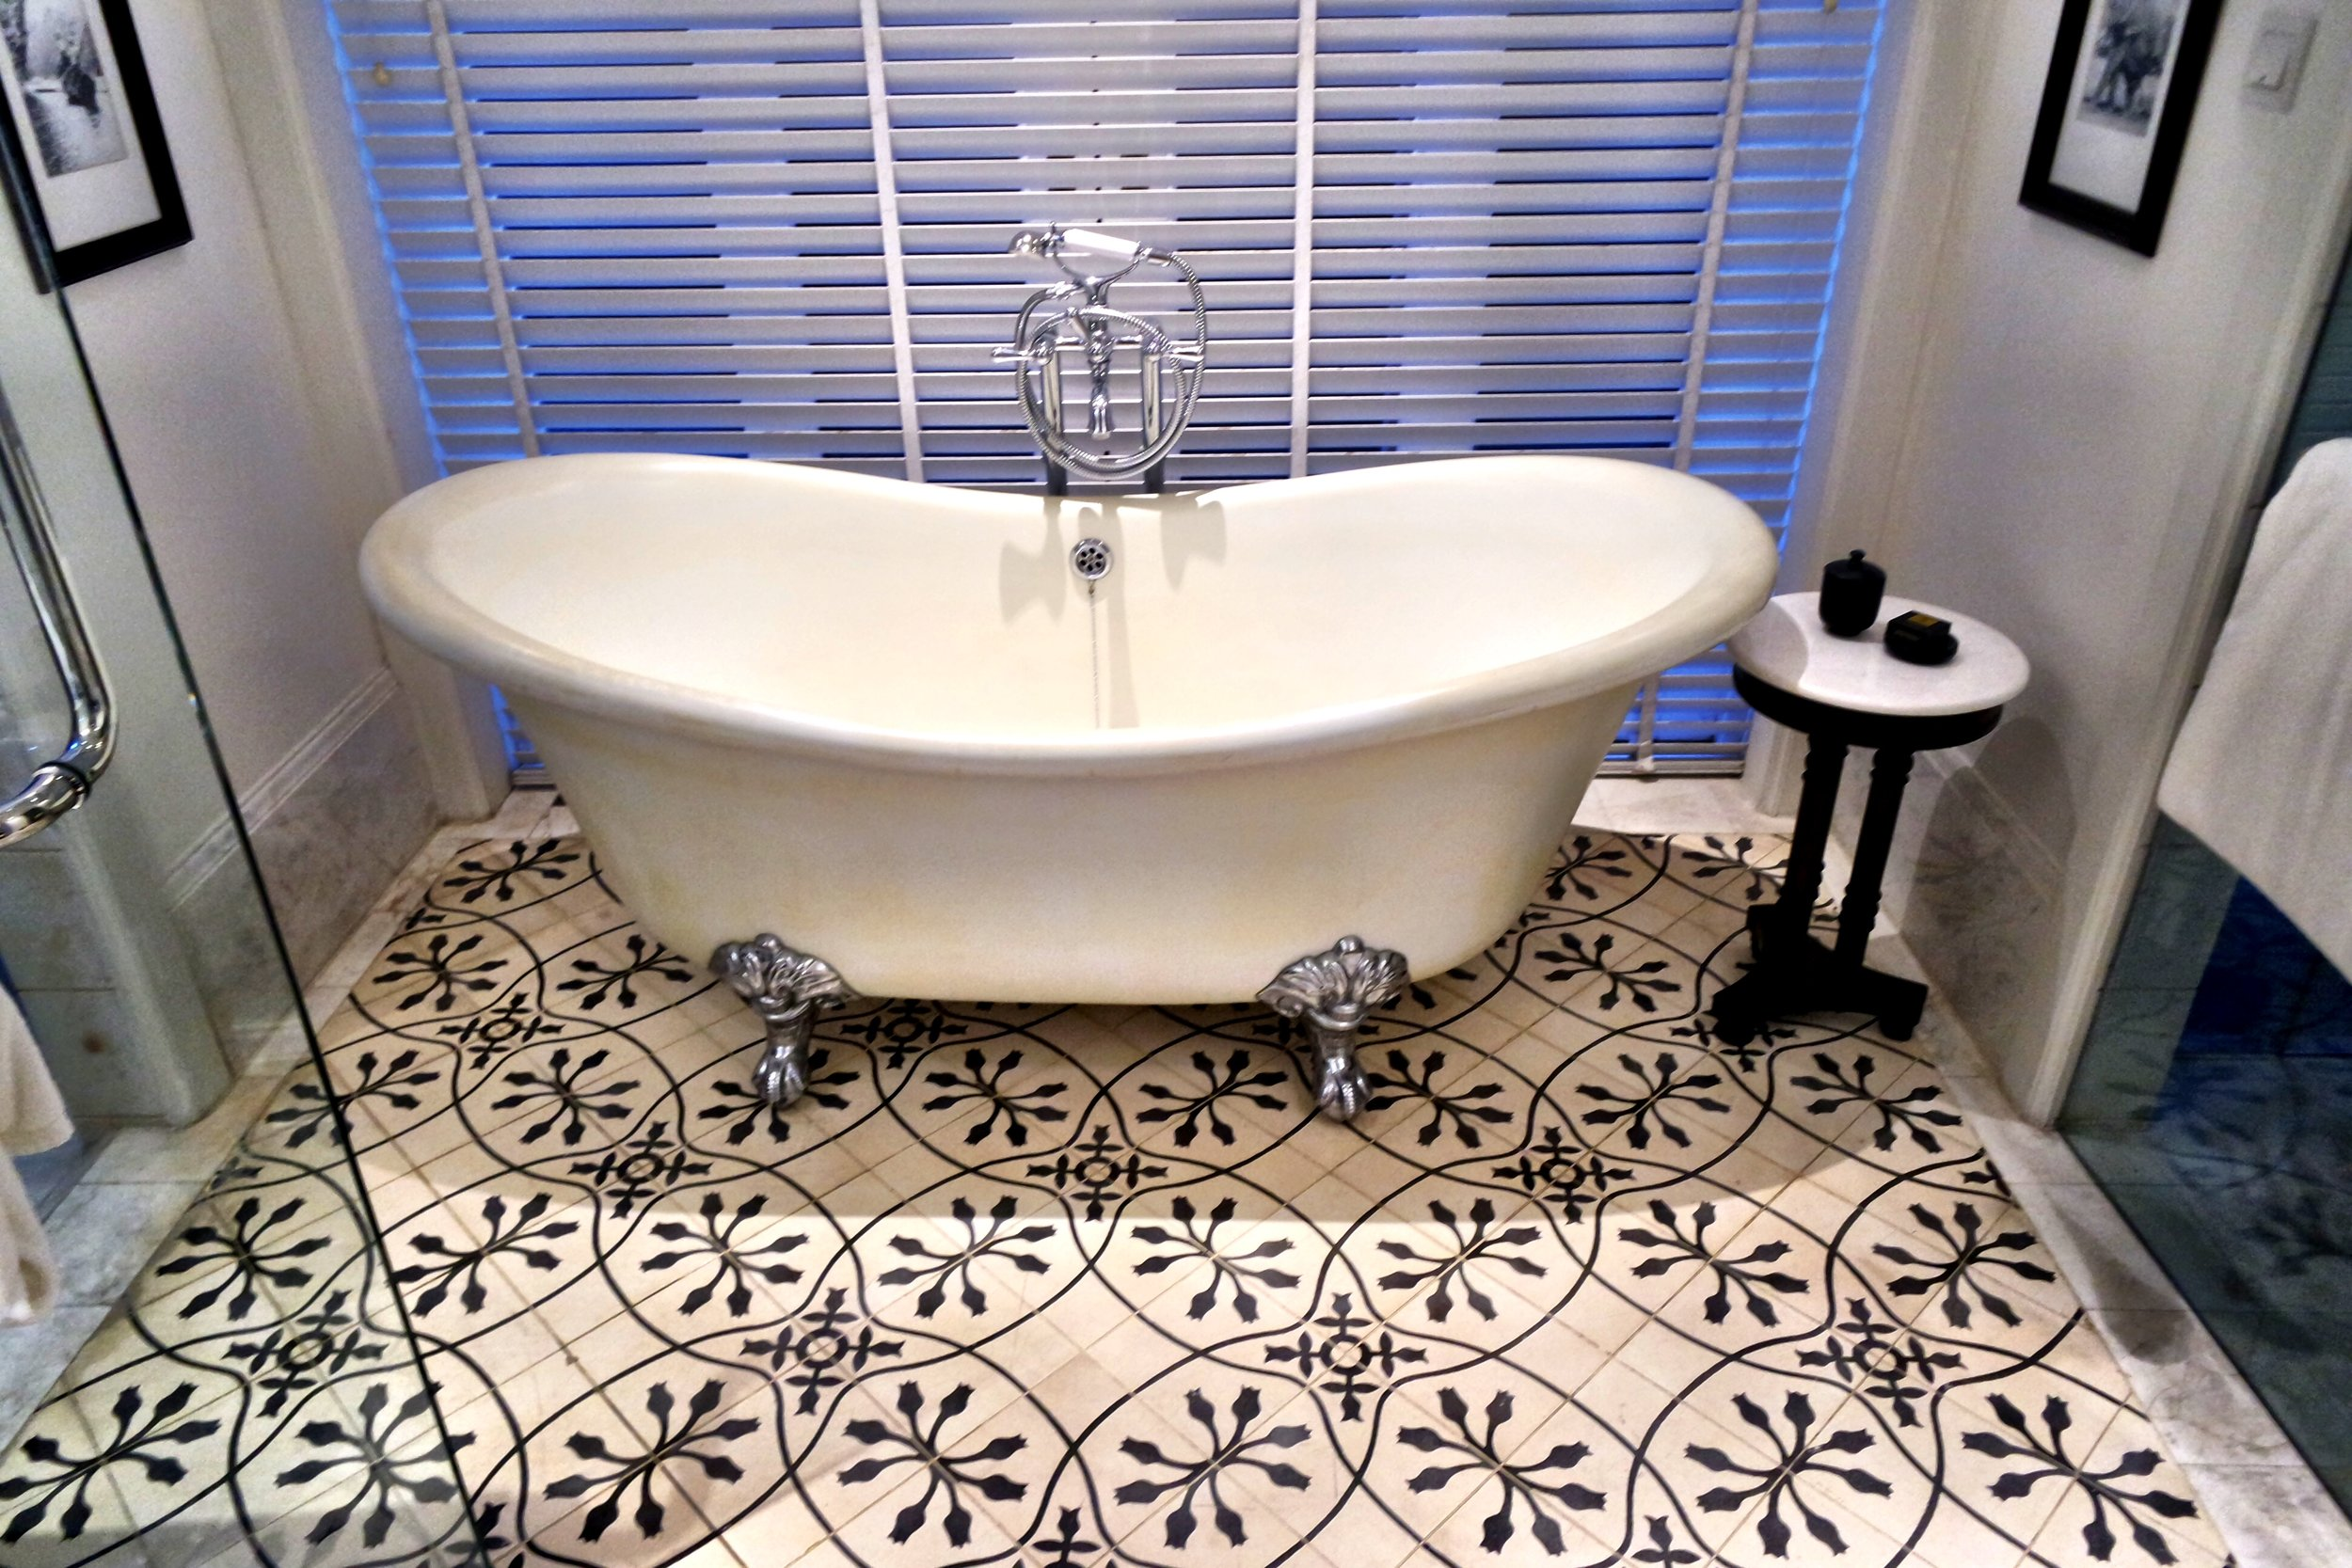 Who wouldn't want to take a bath in this adorable tub?